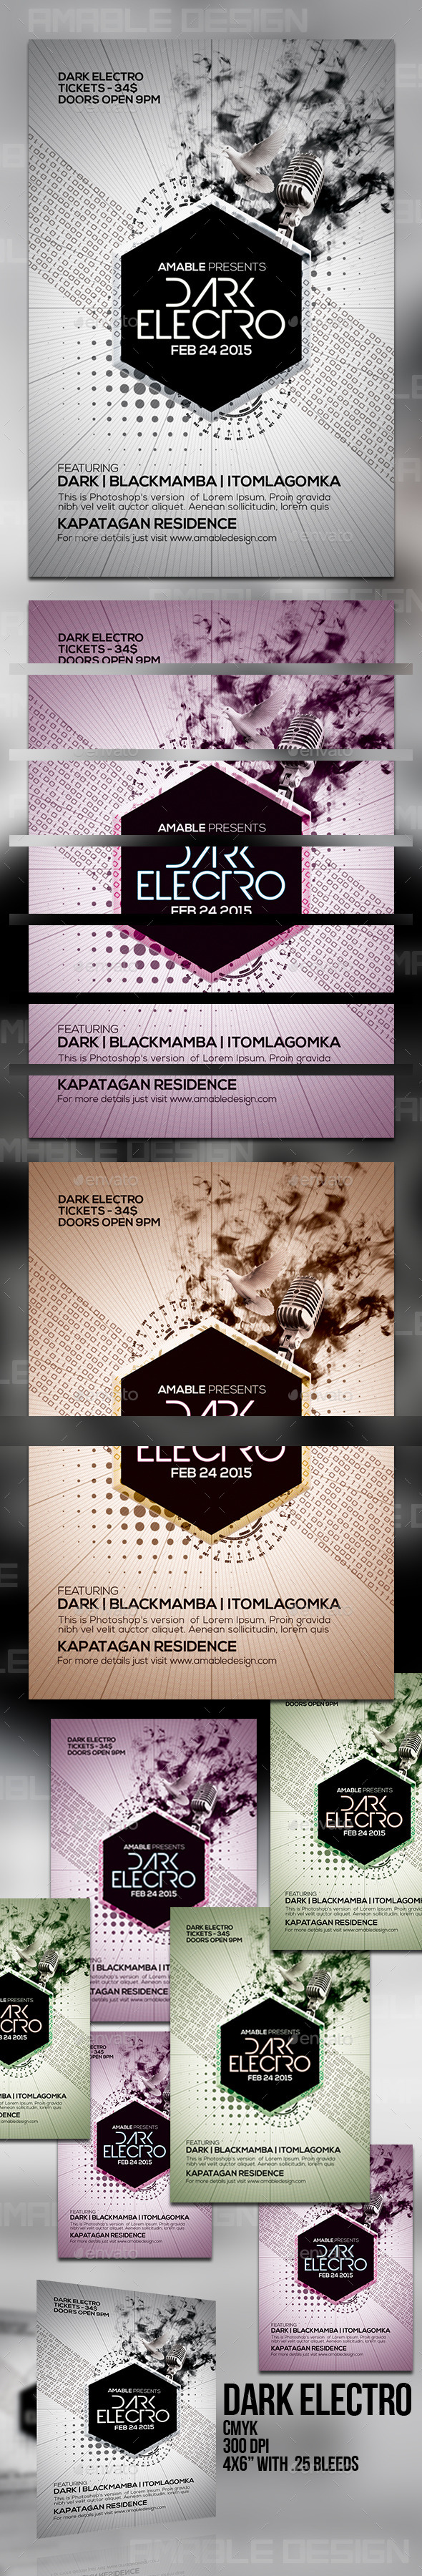 GraphicRiver Dark Electro Flyer 10436188